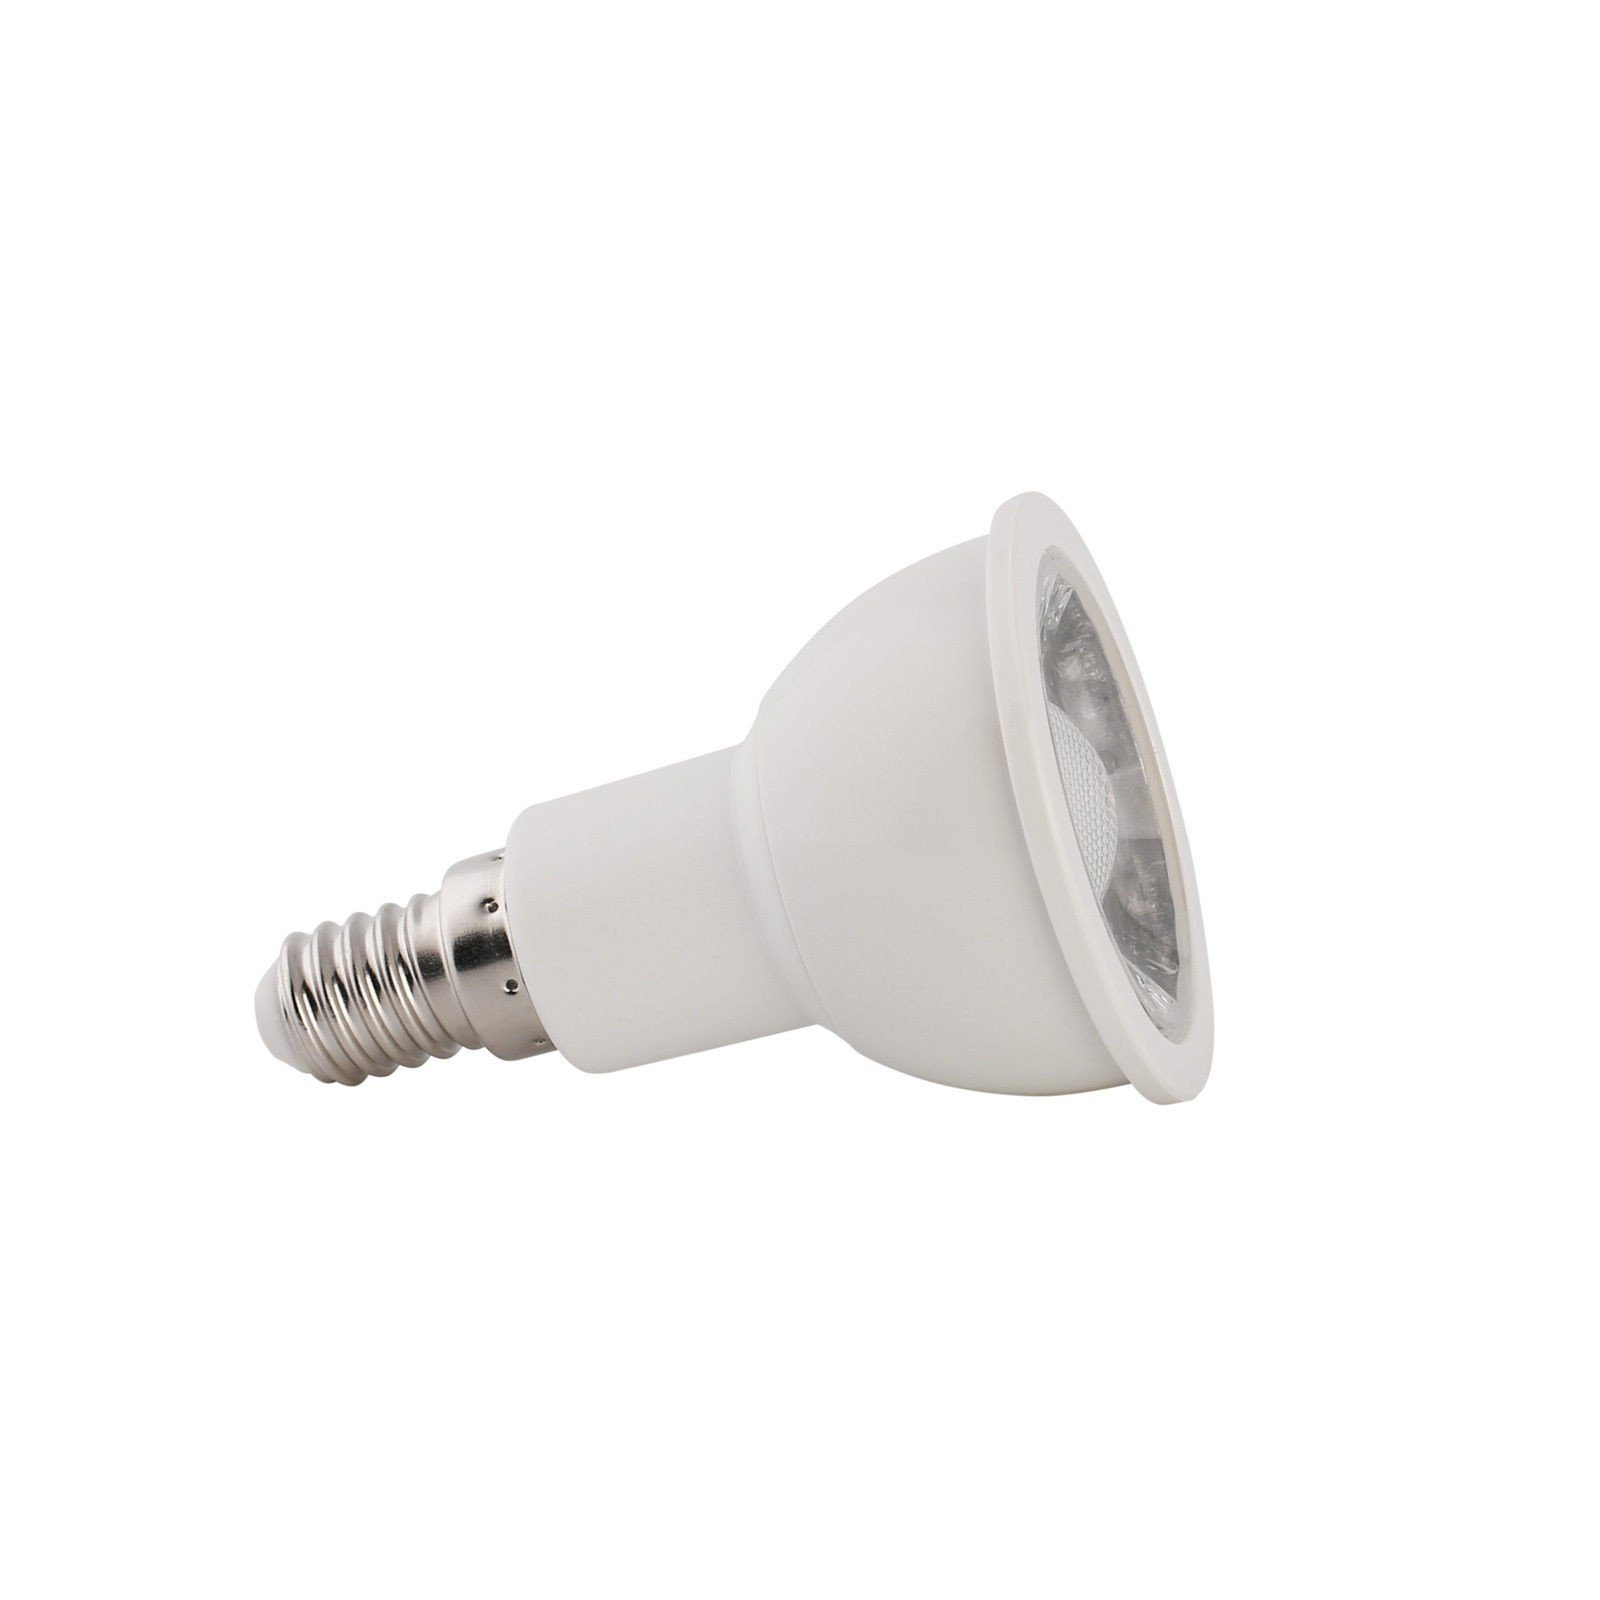 Pool Tone T4 Halogen White COB LED Bulb mini candelabras Home & Garden > Lighting > Light Bulbs Pool Tone